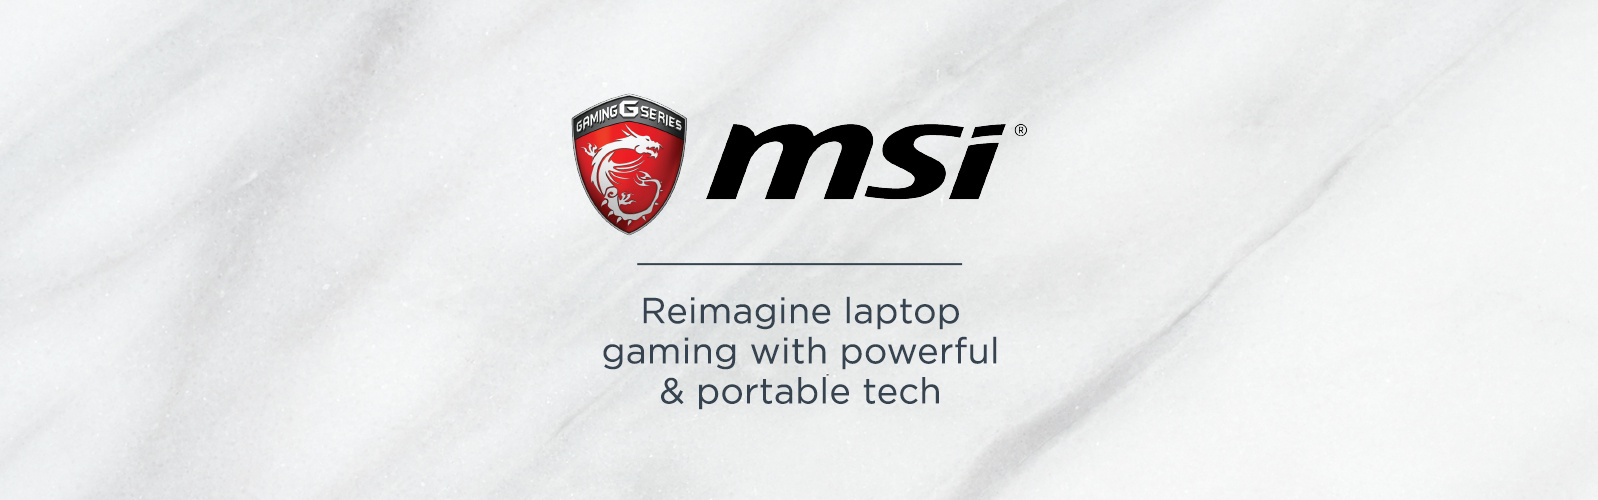 MSI. Reimagine laptop gaming with powerful & portable tech